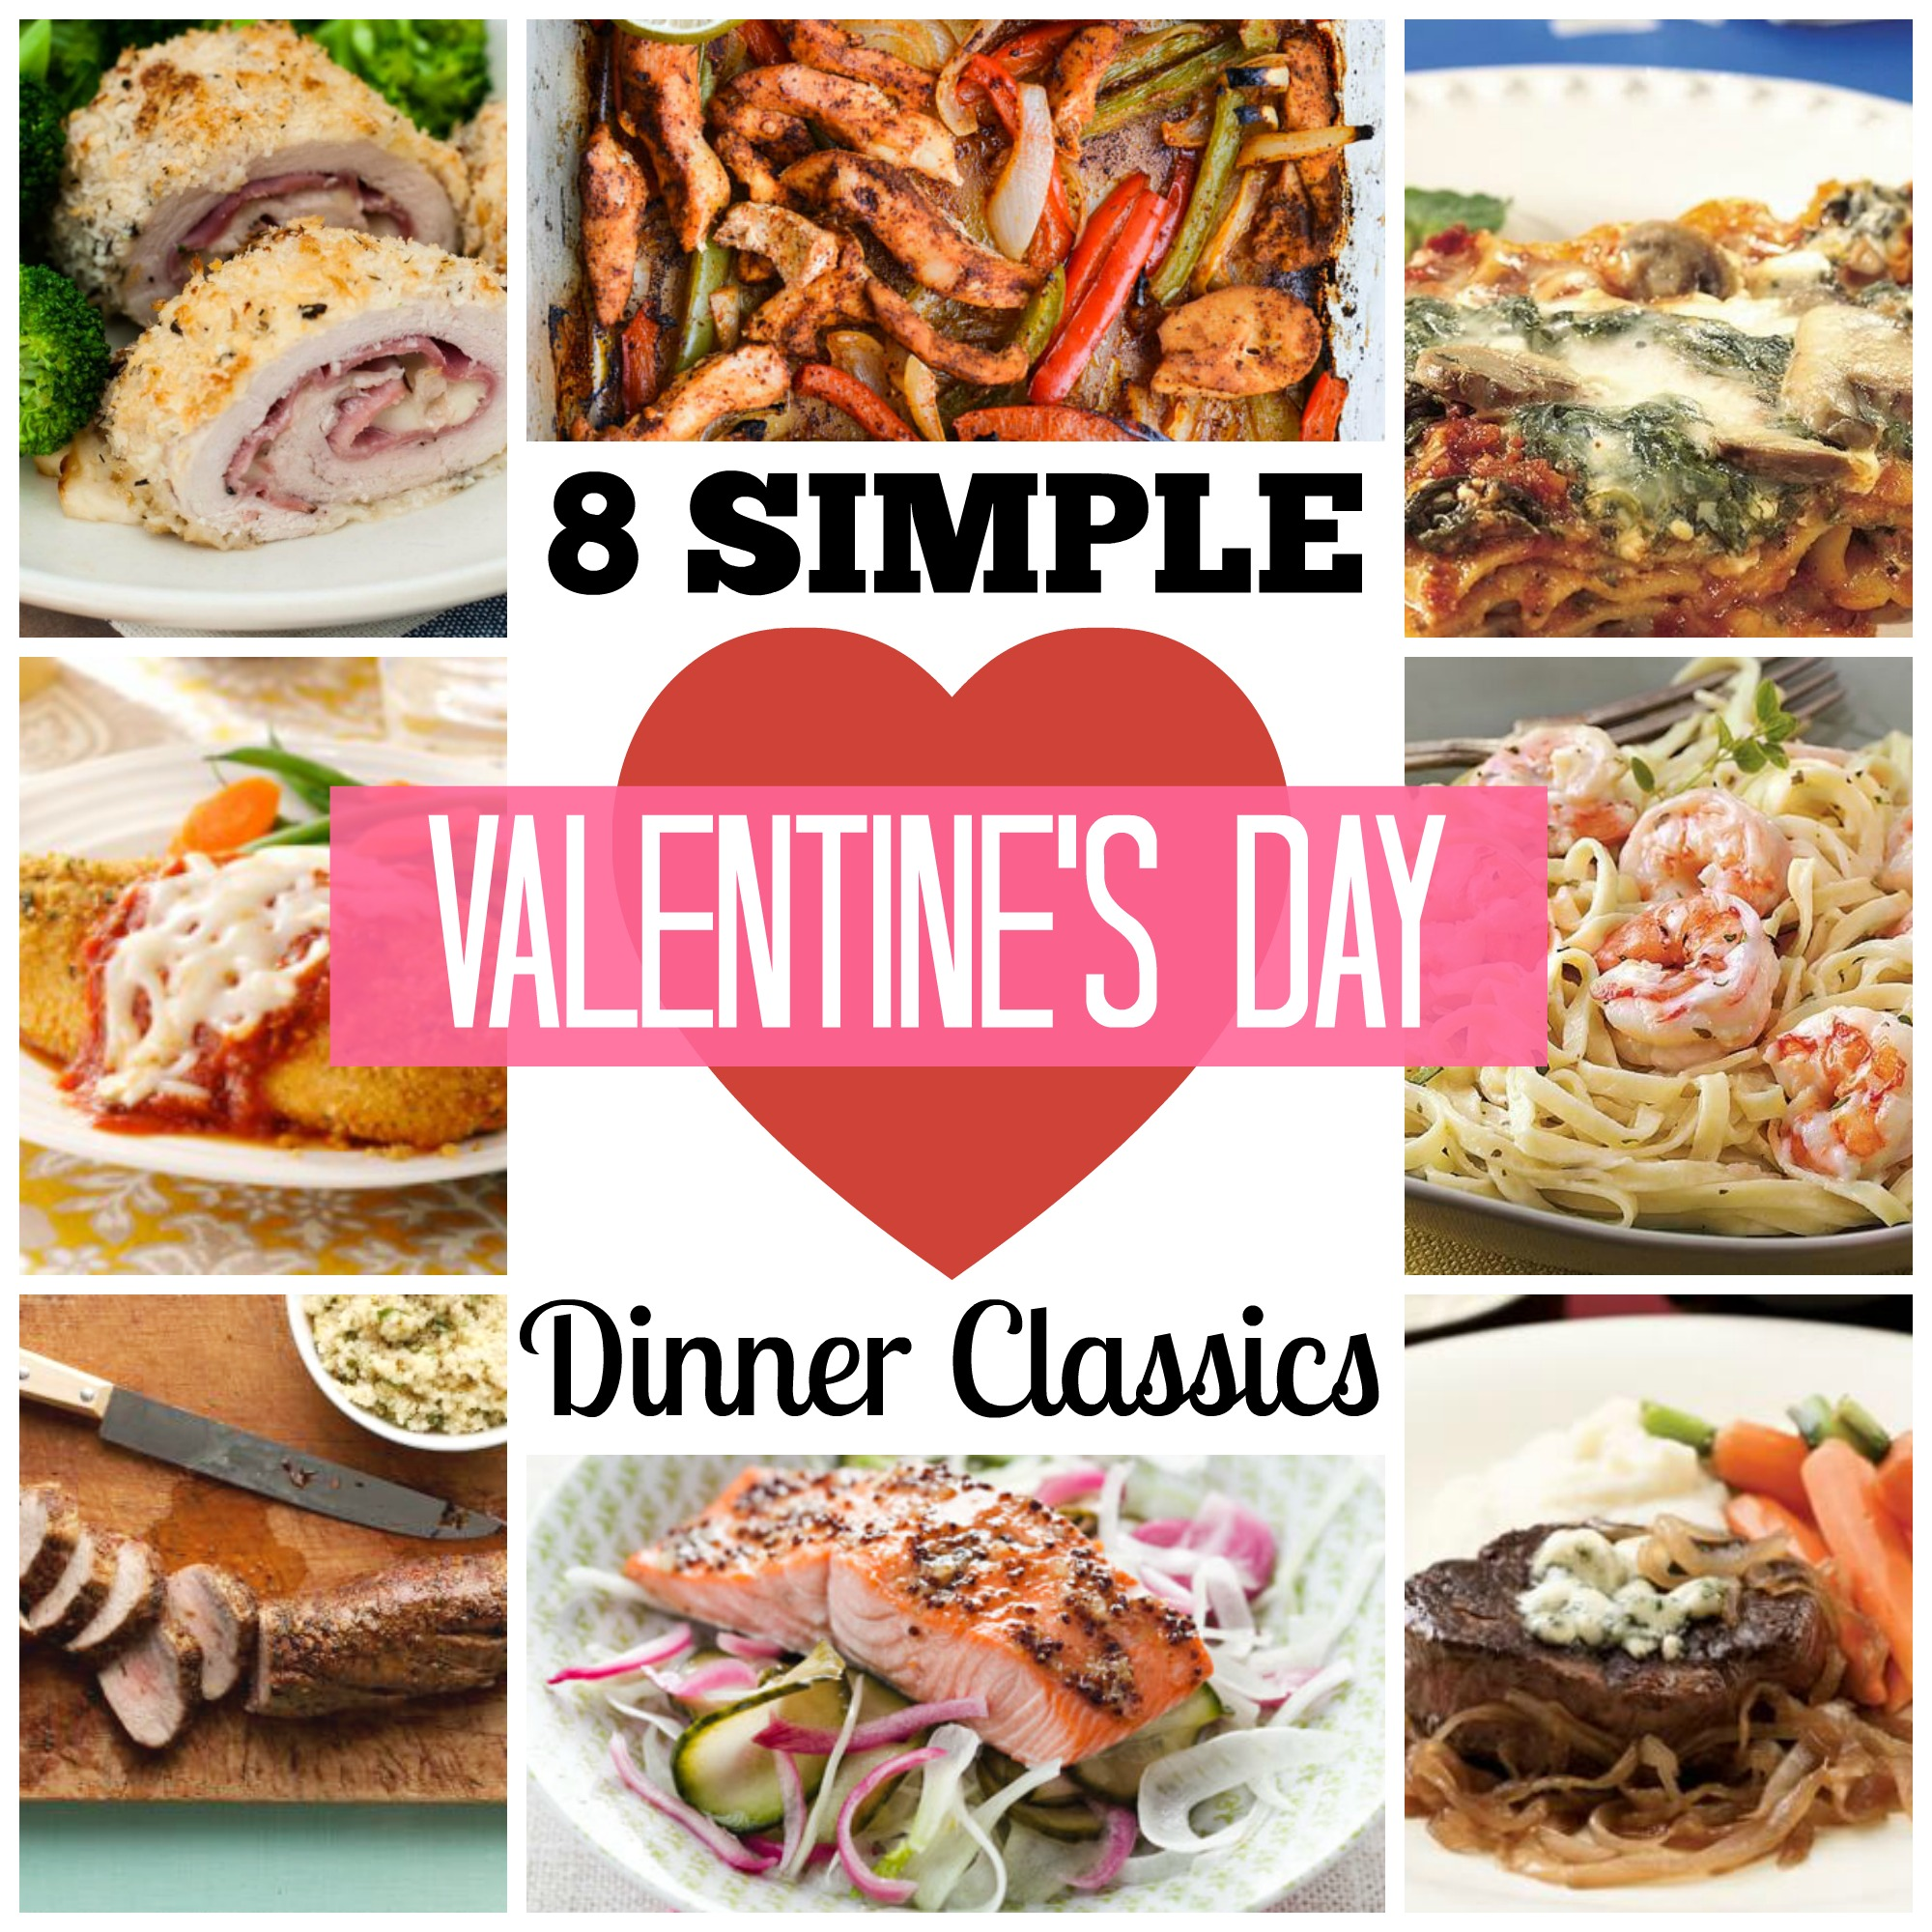 Valentines Day Dinners: 8 Simple Valentine's Day Dinner Classics